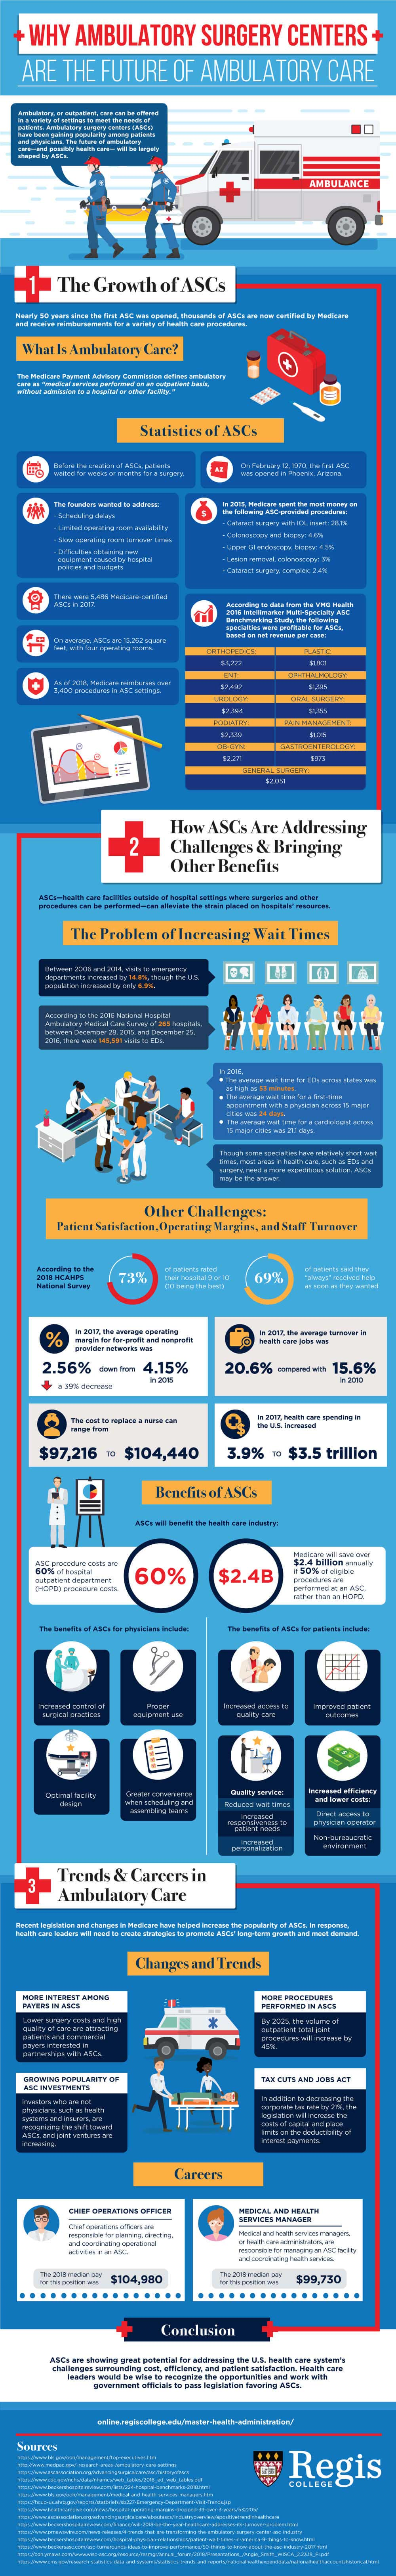 How ASCs are changing and improving patient health care delivery.